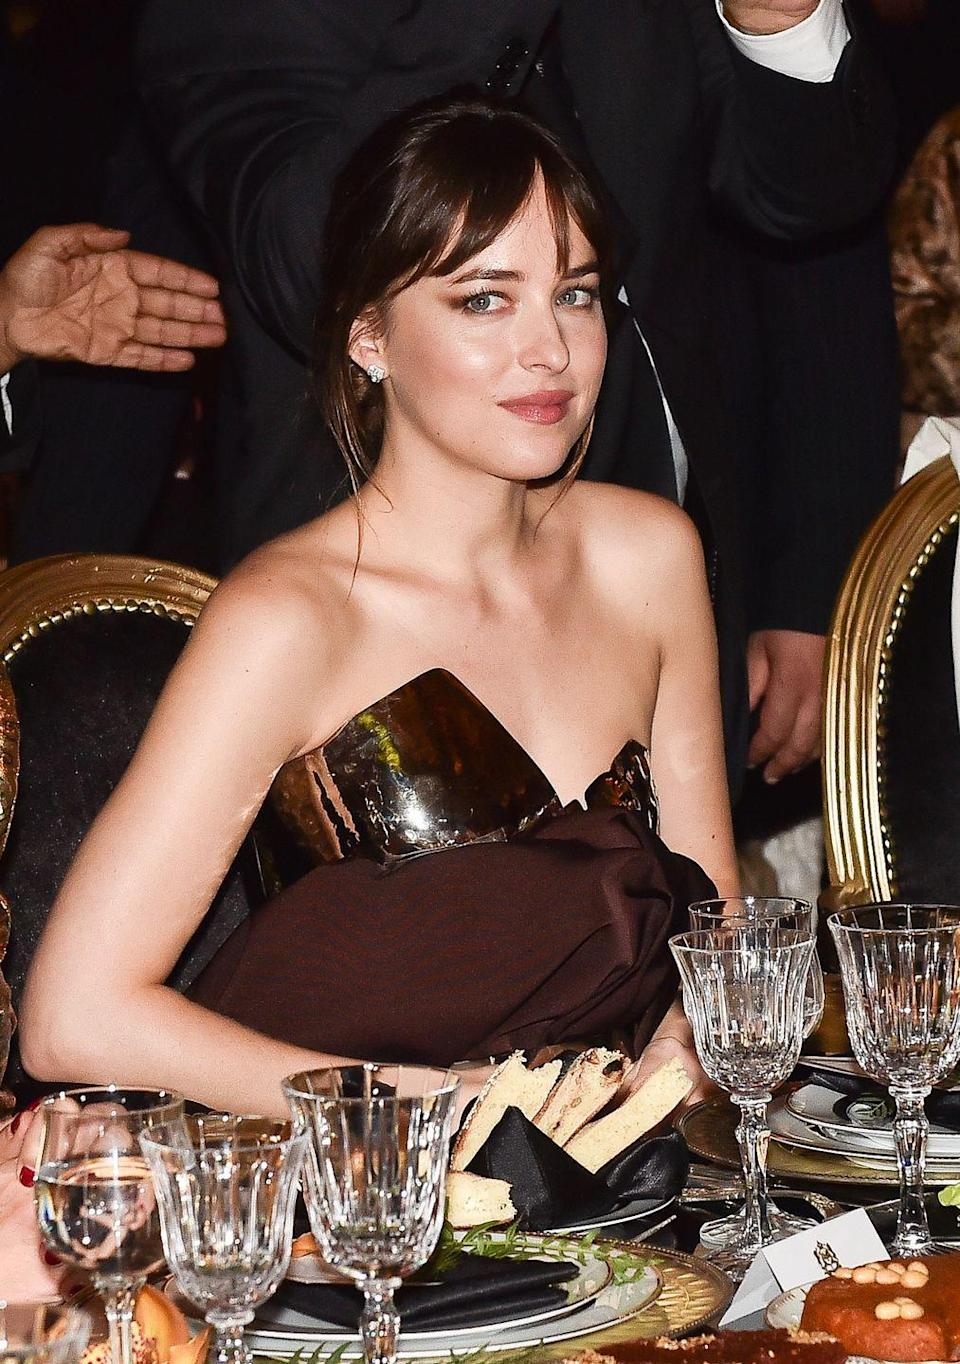 <p>Known for her breakout role as Anastasia Steele in the <em>Fifty Shades of Gray </em>trilogy, Dakota Johnson was named Miss Golden Globe in 2006– carrying on the Hollywood legacy of both her mother, Melanie Griffith, who was also a Miss Golden Globe. </p>